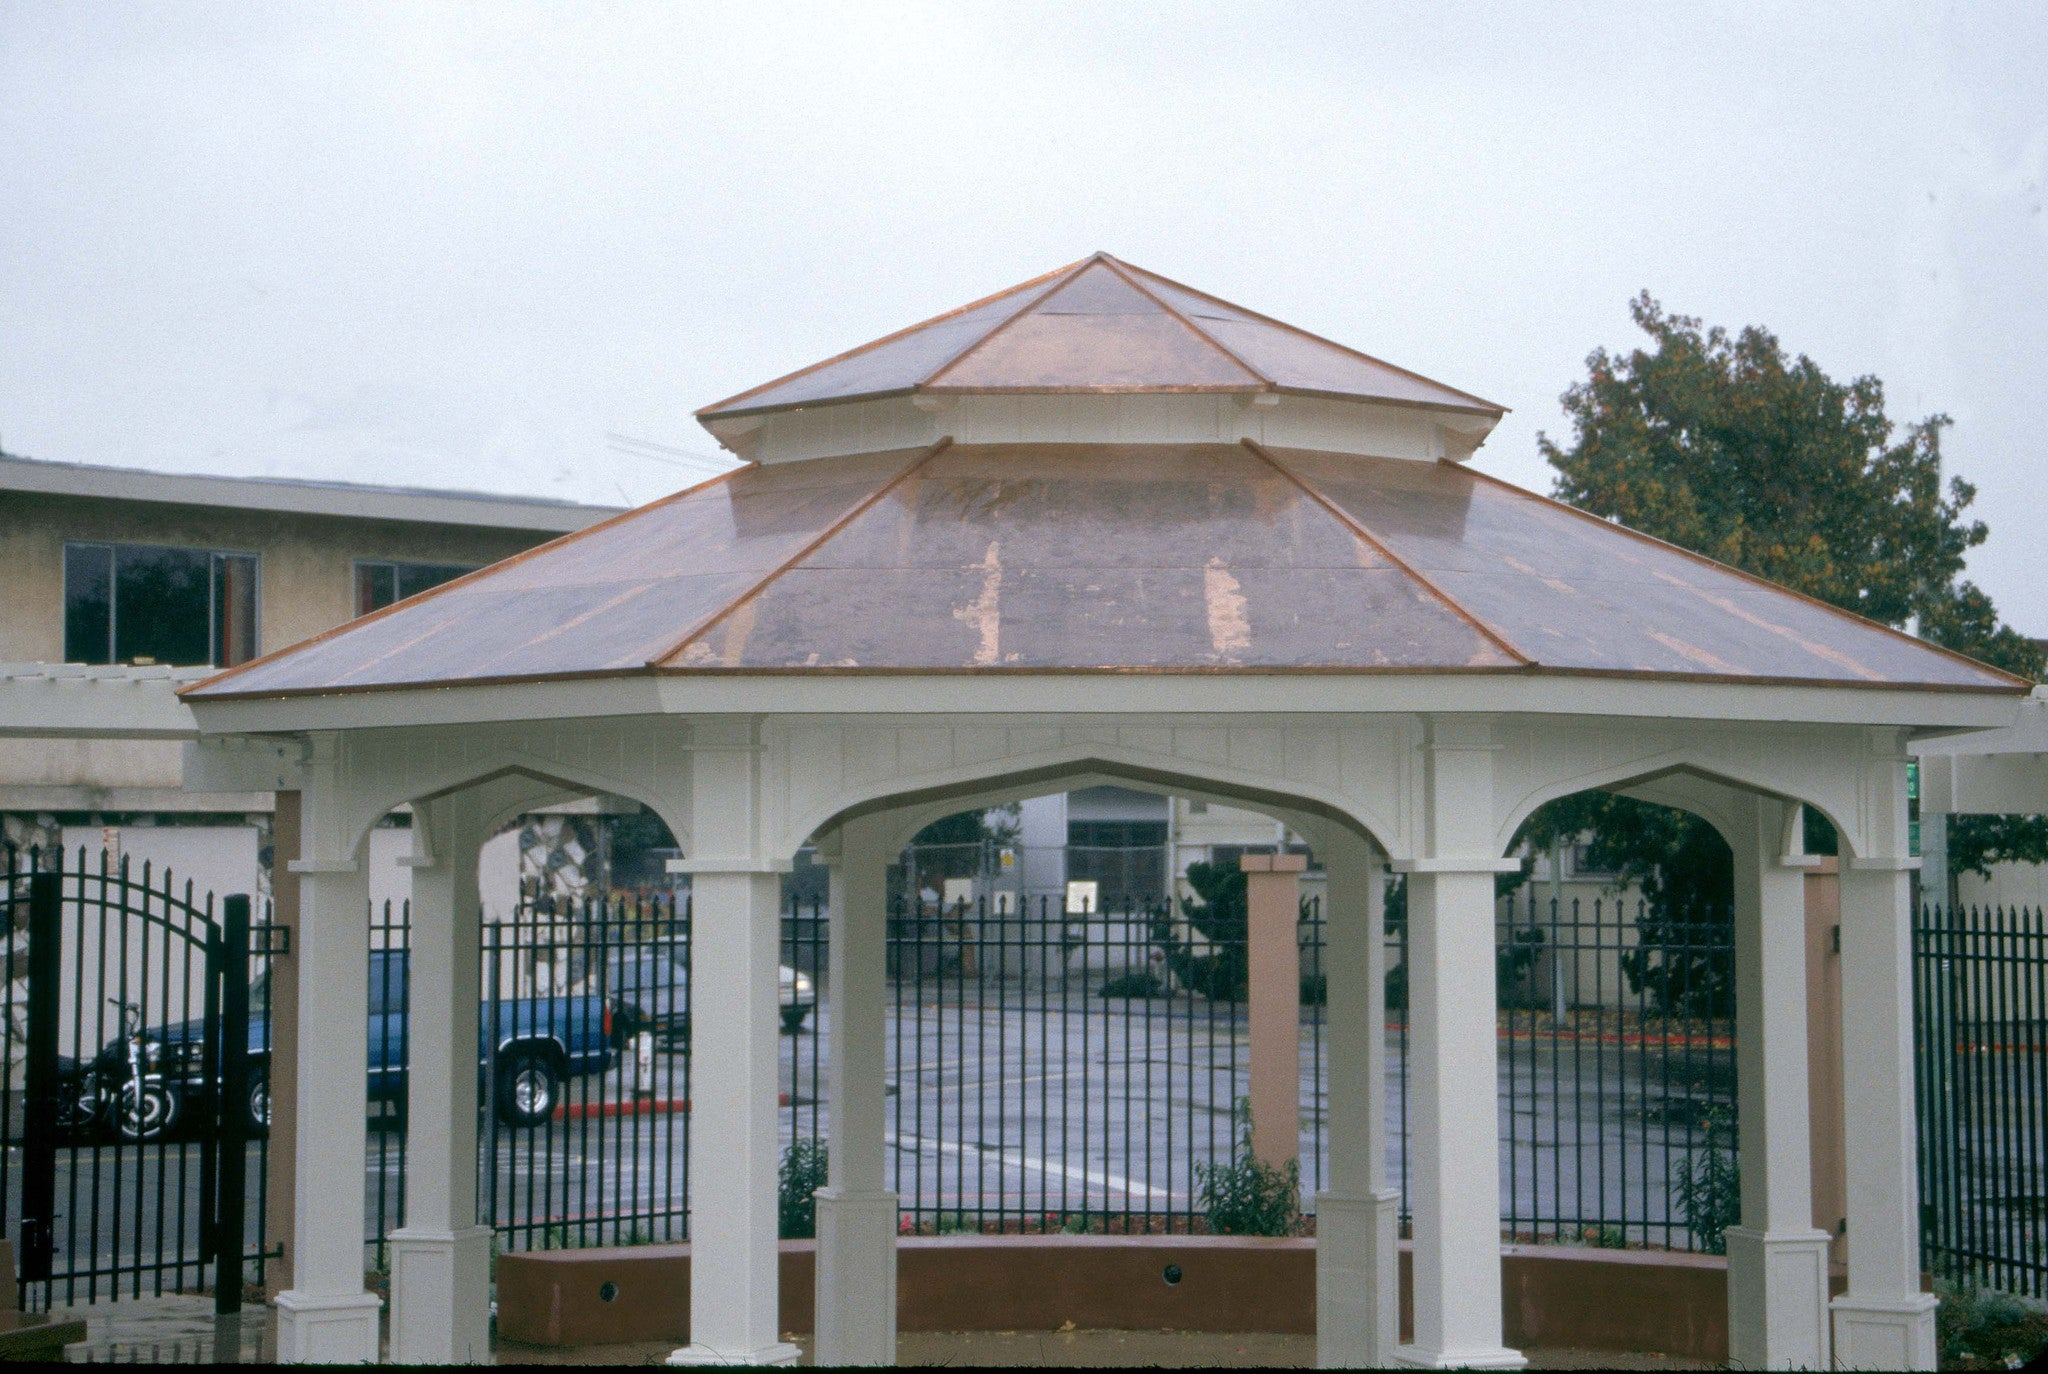 Parks U0026 Recreation   Octagon Gazebo With Type E Pagoda Style Copper Roof,  Gothic Arch ...